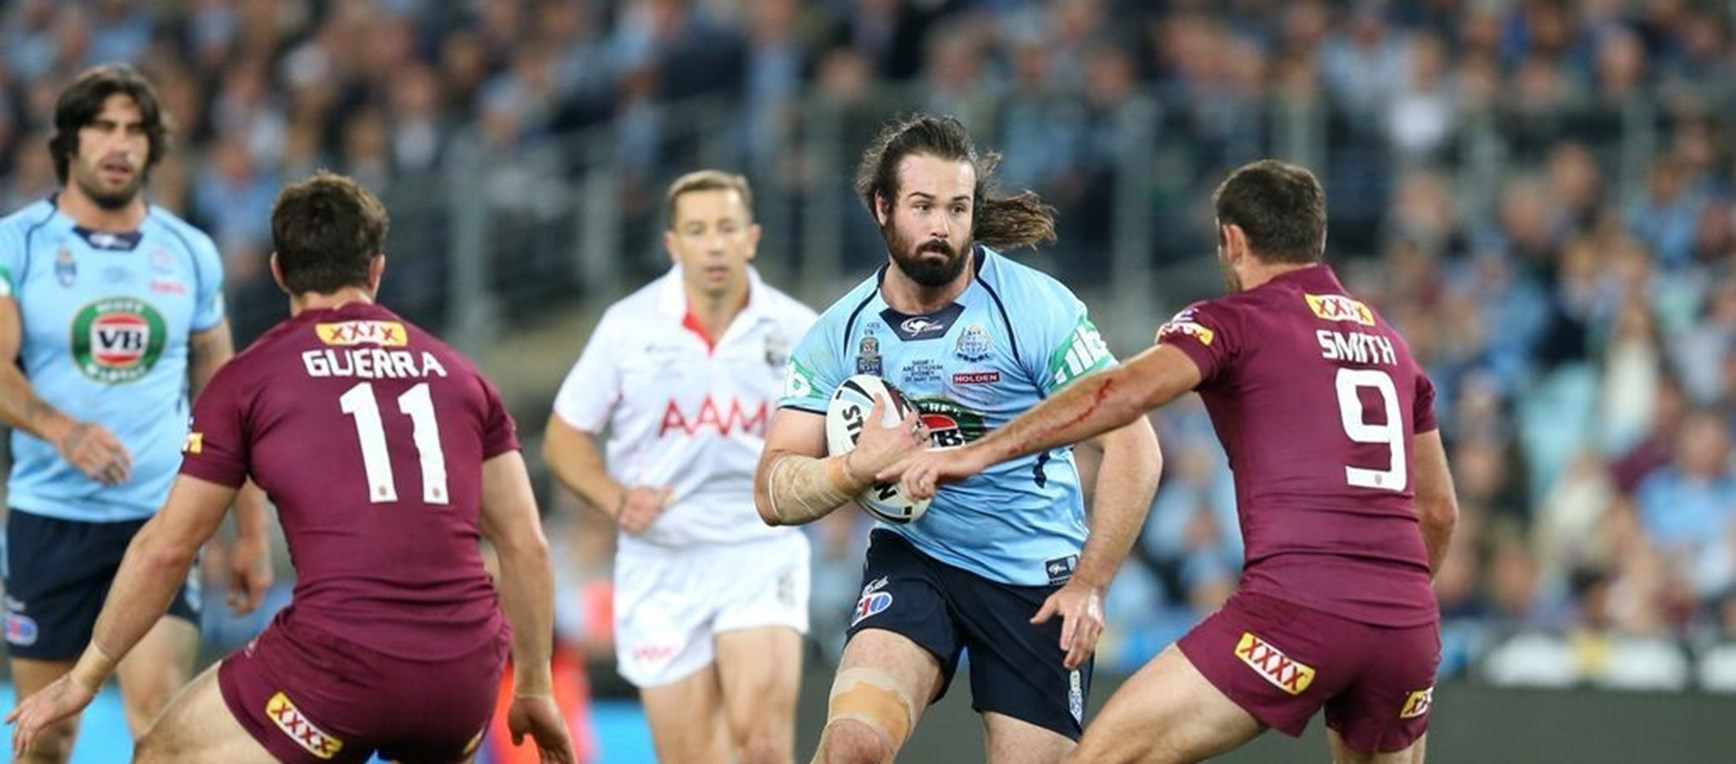 GALLERY: State of Origin Game 1